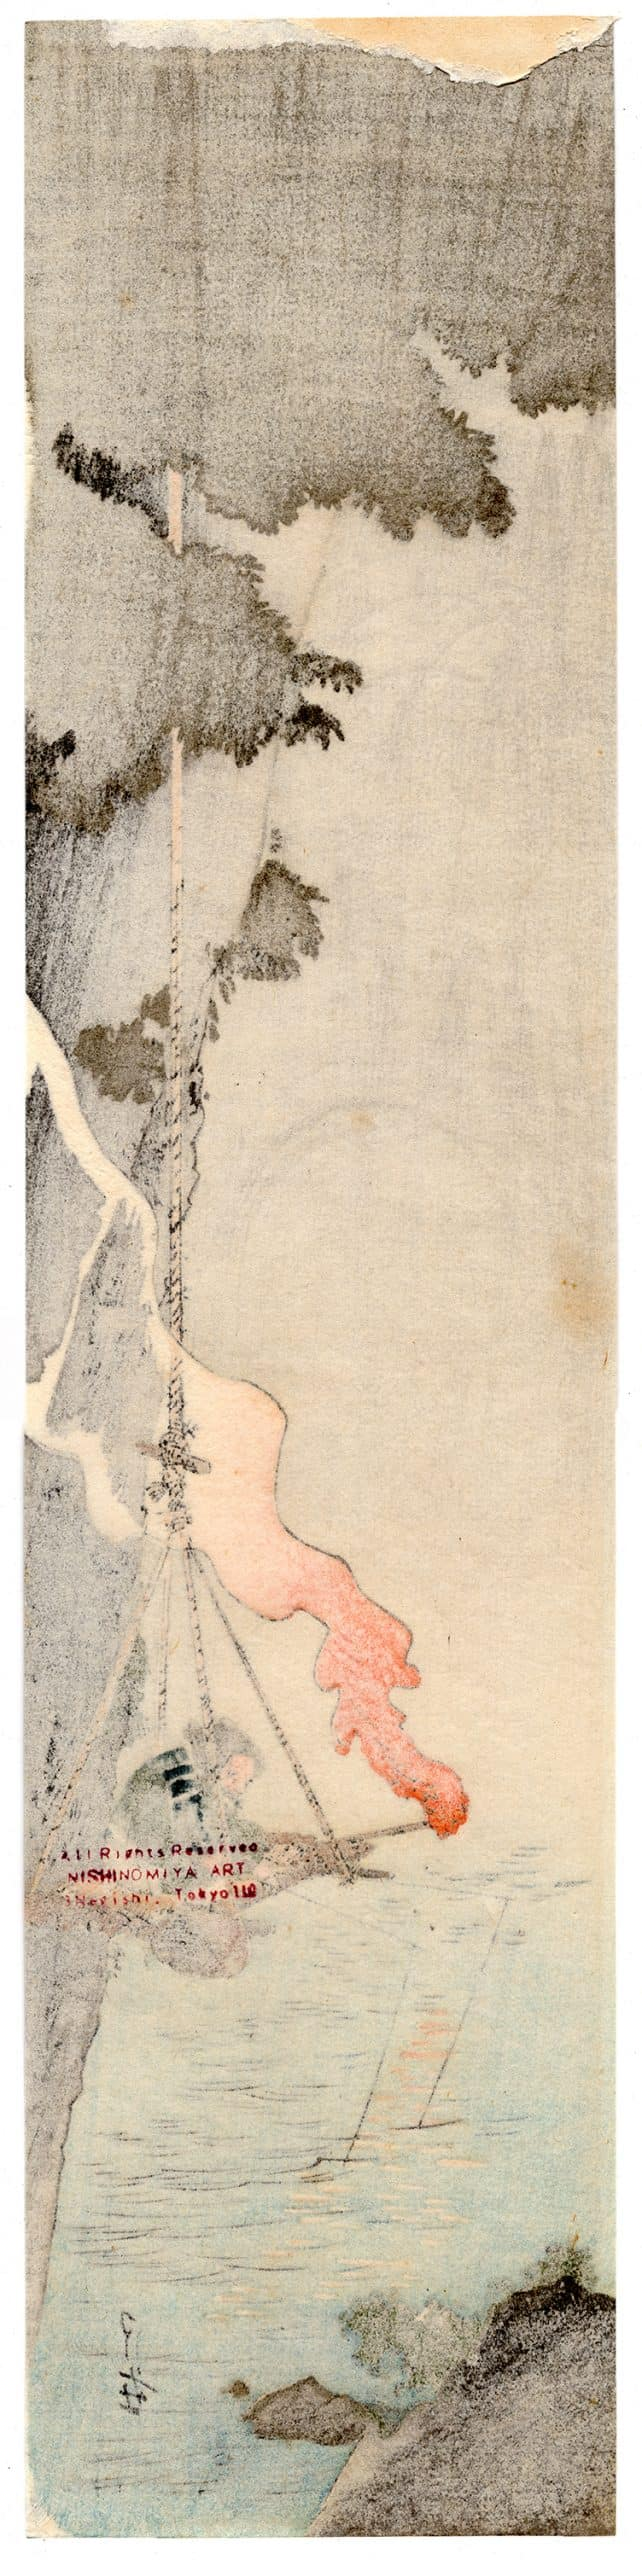 Yoshimoto Gesso - Man with fire on a cliff (verso)